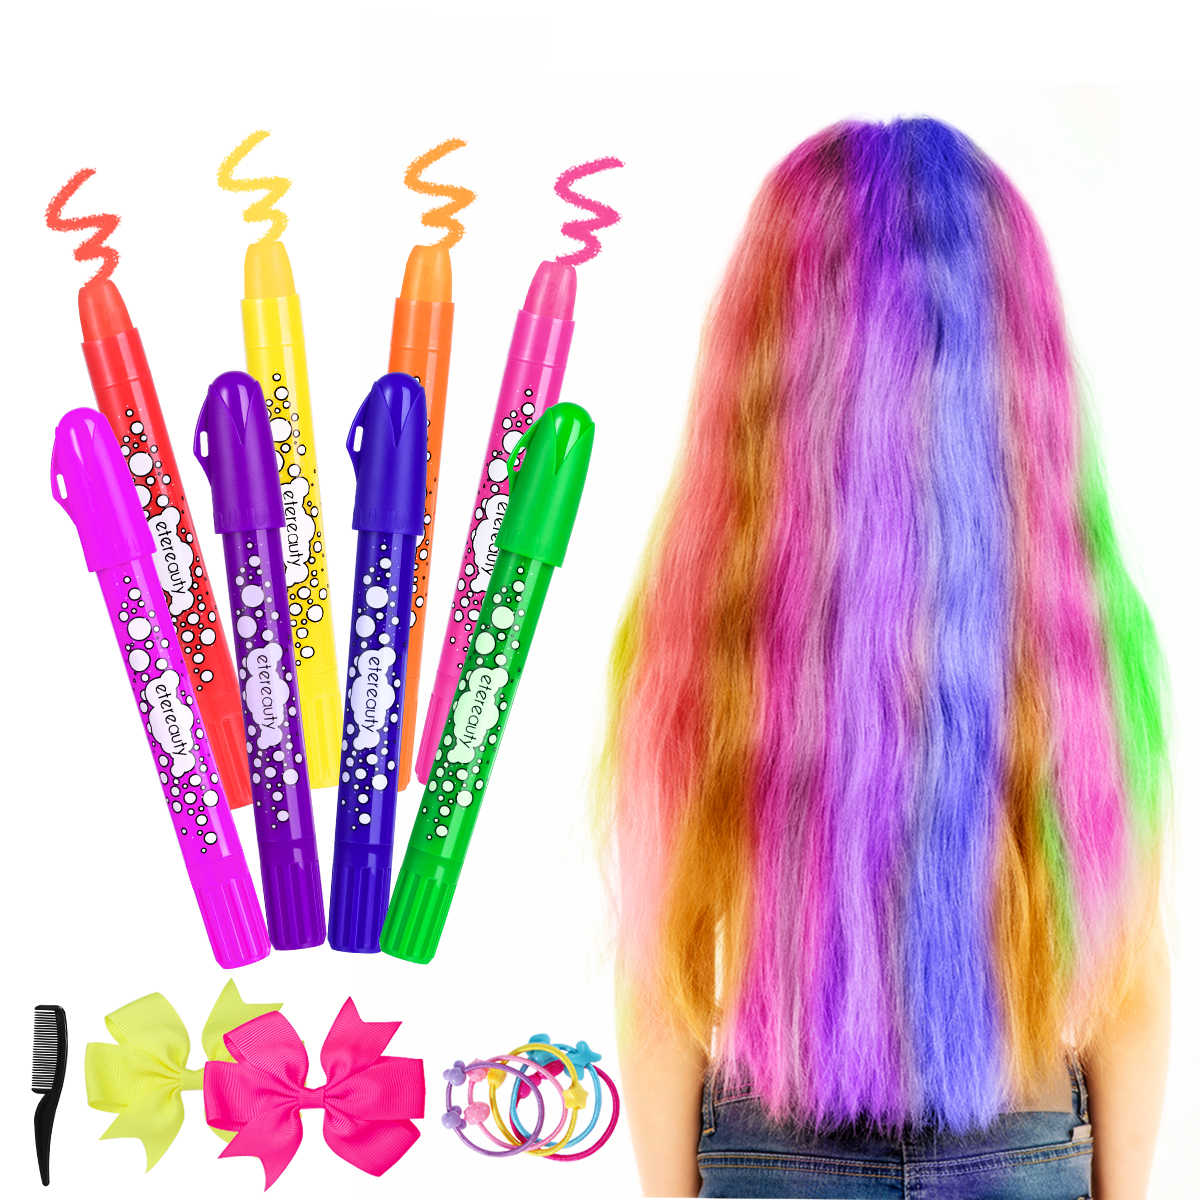 Hair Chalk Set 8 Colors Non Toxic Washable Temporary Hair Dye Rainbow Hair Color For Kids And Teens With Bow Hair Tie And Comb Aliexpress